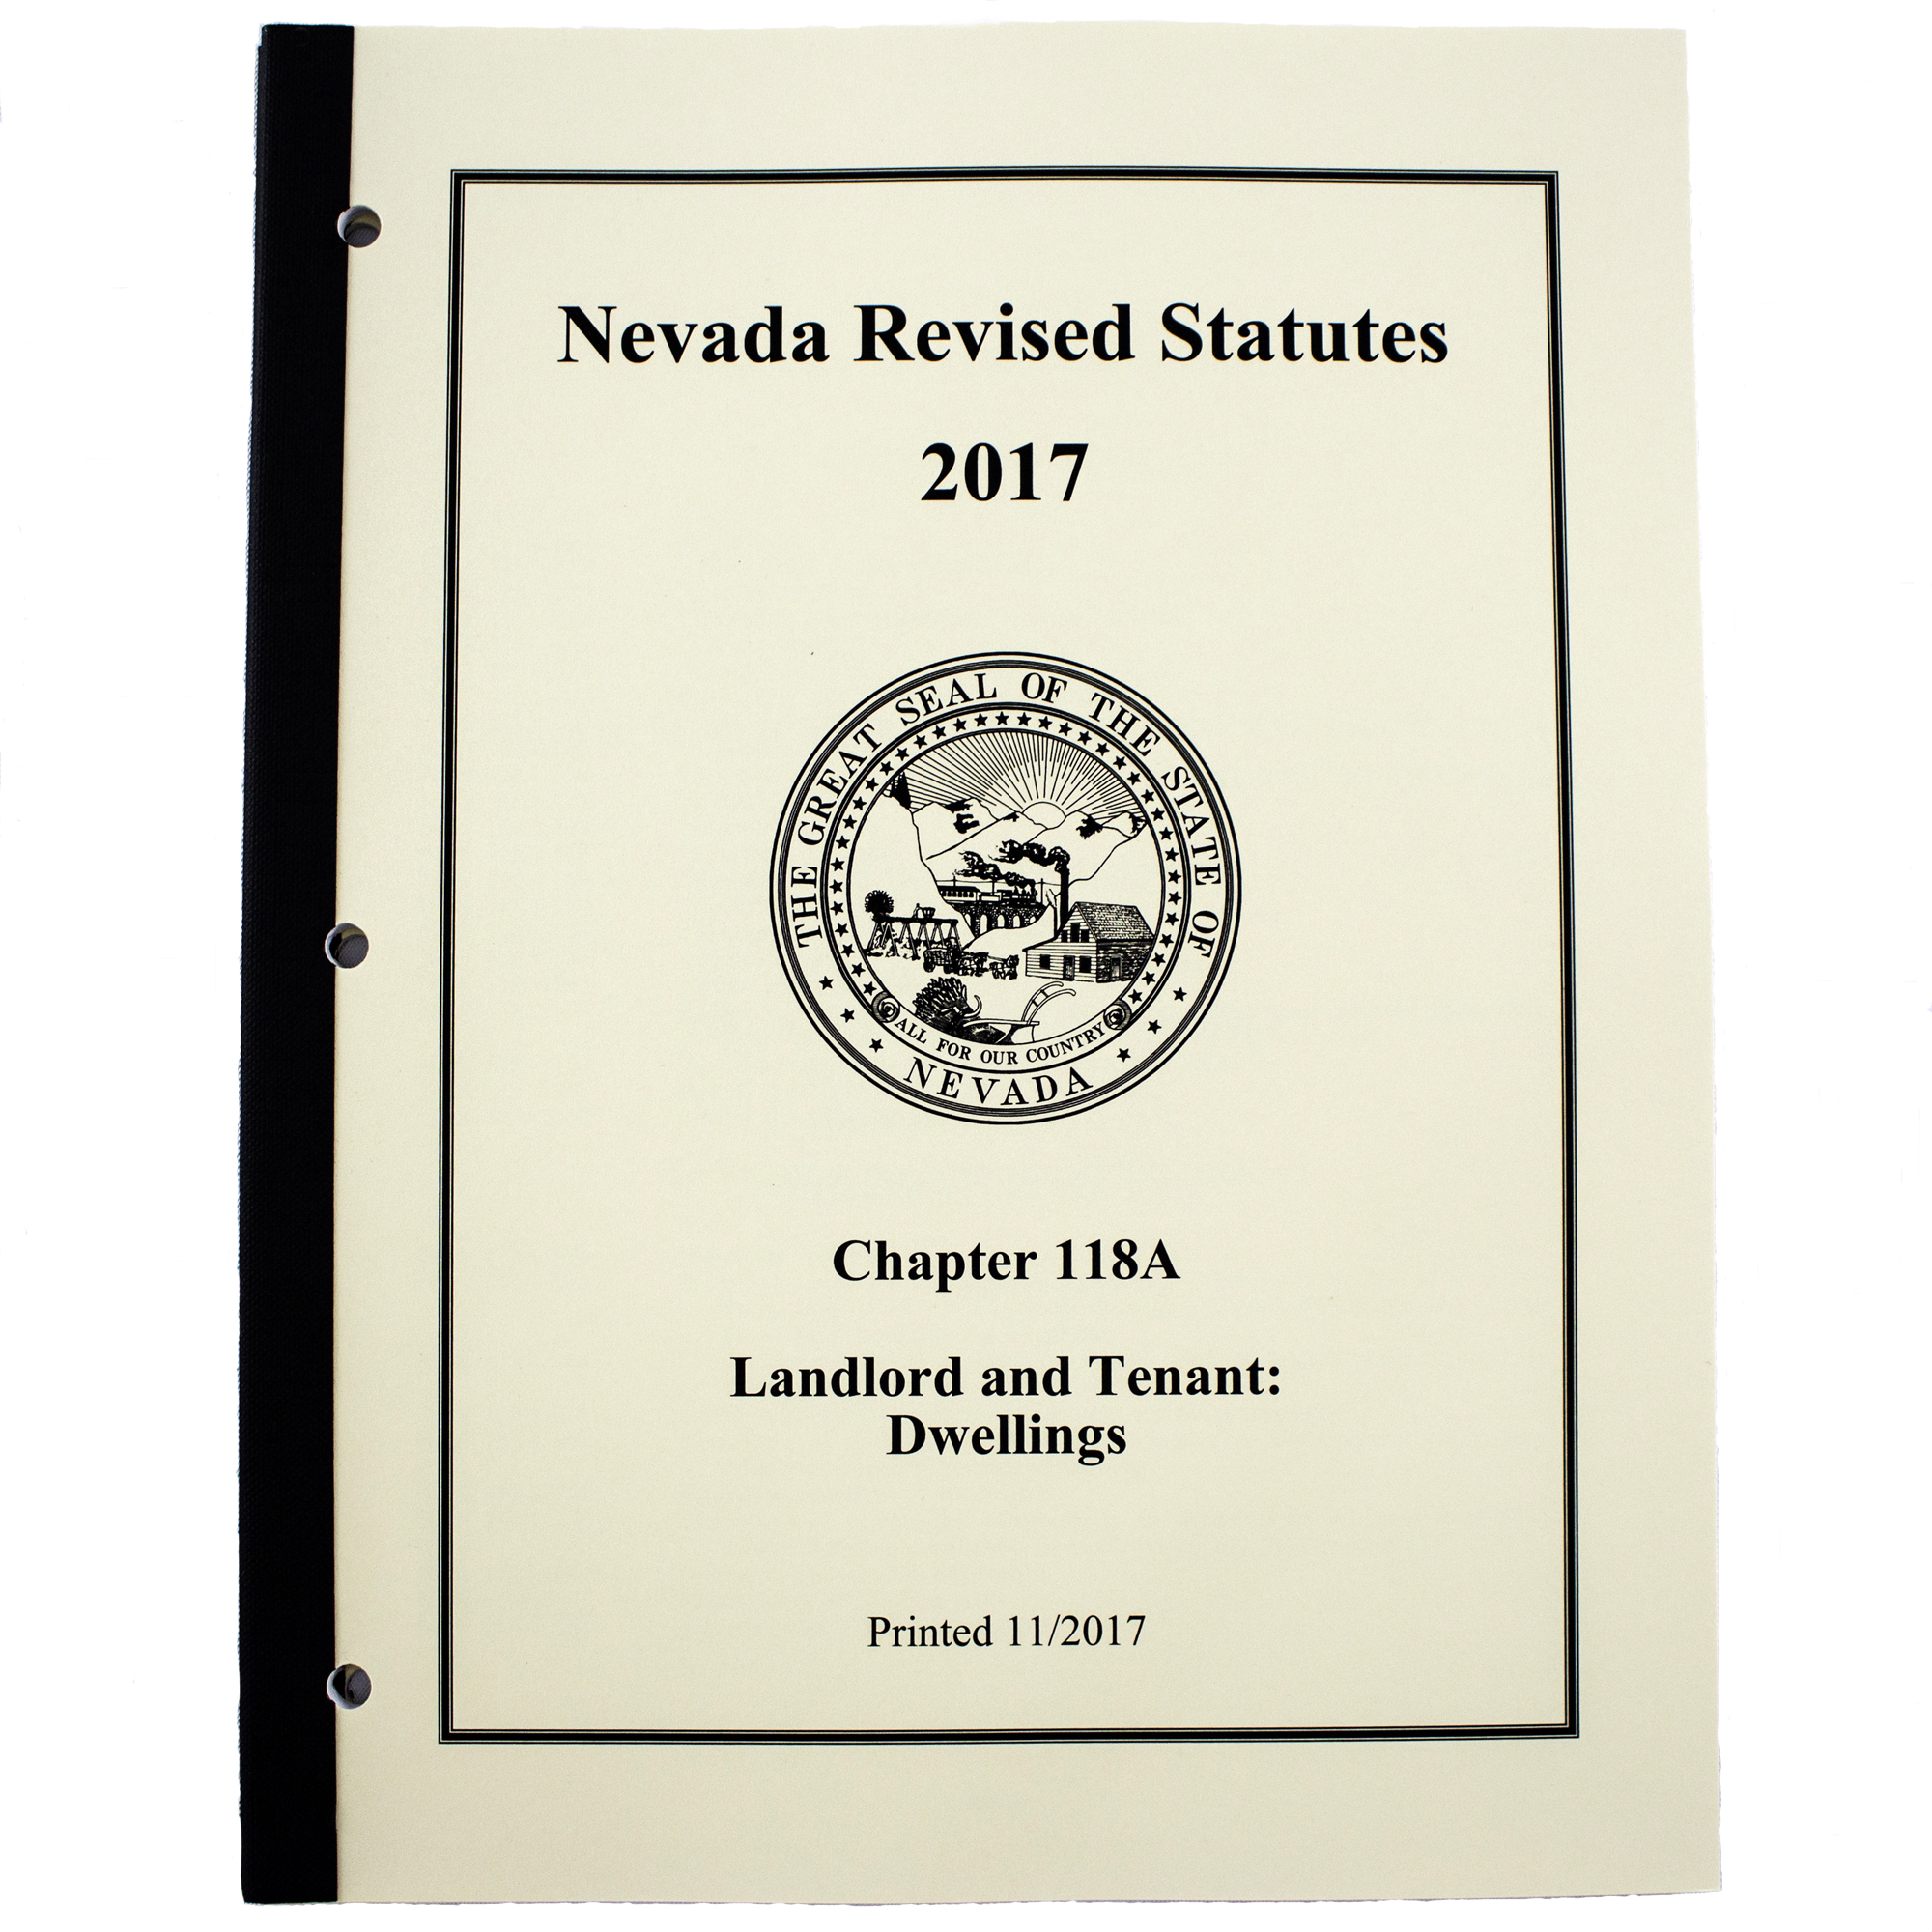 Nevada Revised Statutes >> Nrs Chapter 118a Landlord And Tenant Dwellings Booklet With Index